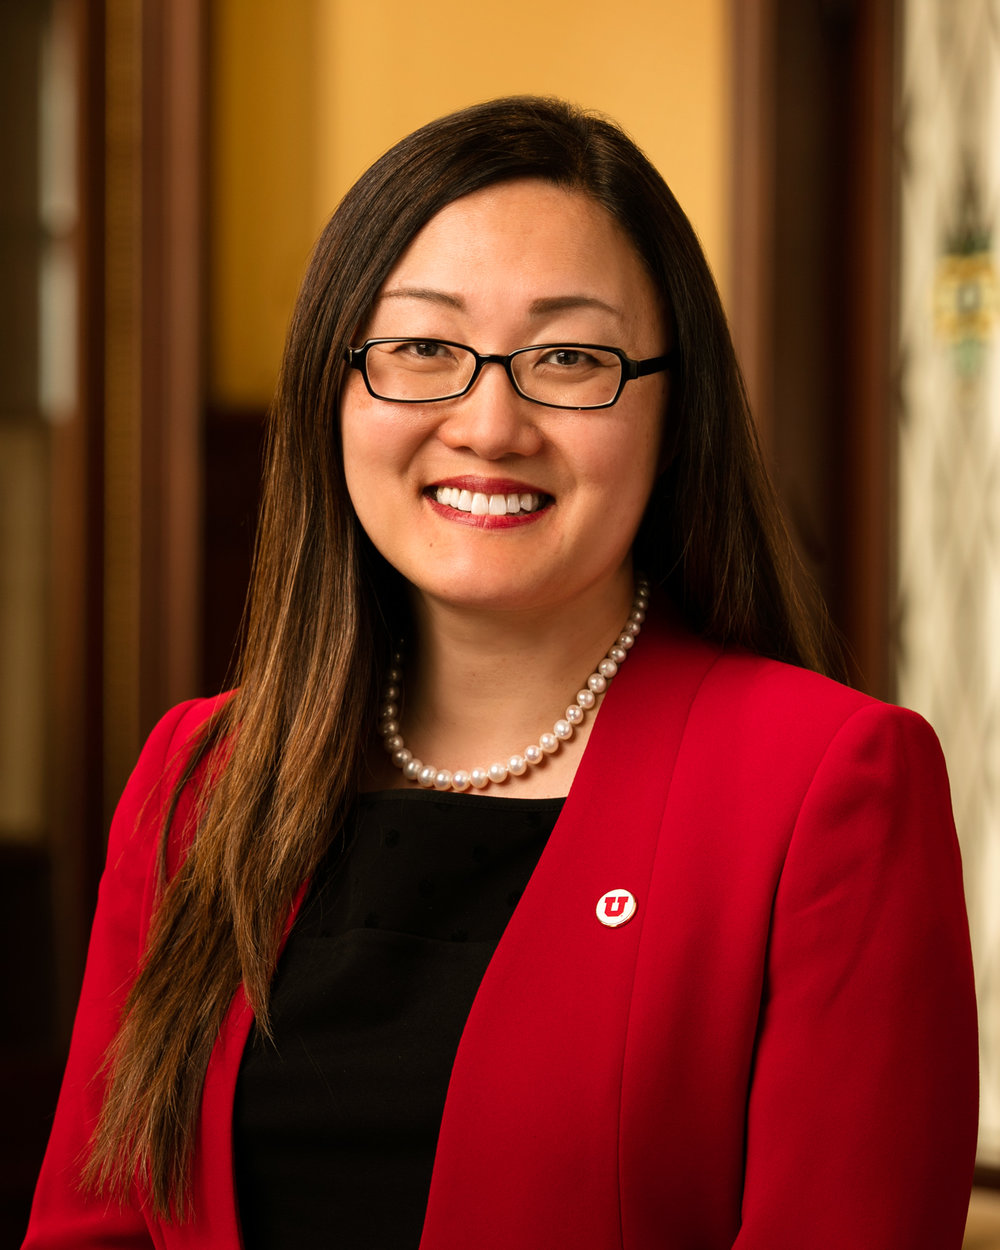 Jean Oh, M. Ed., Managing Director of Global Internships Jean Oh joined the University of Utah in 2013 and served as the first Director of UAC Student Services and Main Campus Operations until 2017 when she joined the Hinckley Institute of Politics as the Managing Director of the Global Internship Program. jean.oh@hinckley.utah.edu